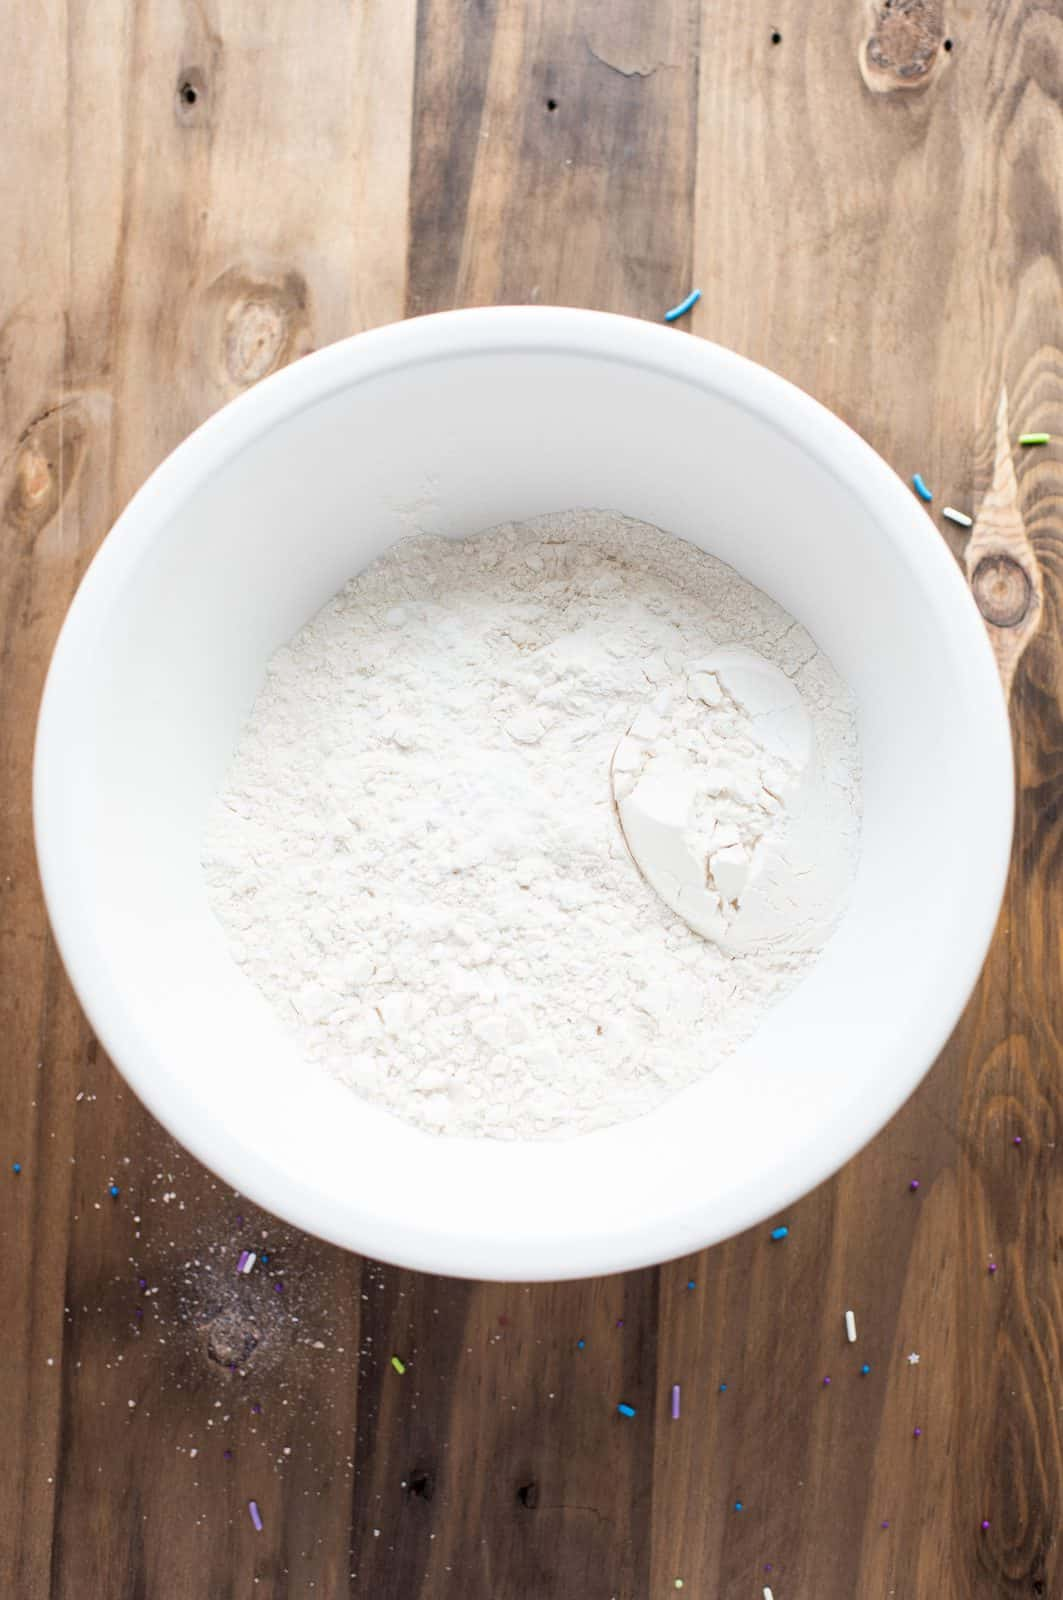 All-purpose flour, baking powder, baking soda and salt whisked together in white bowl.